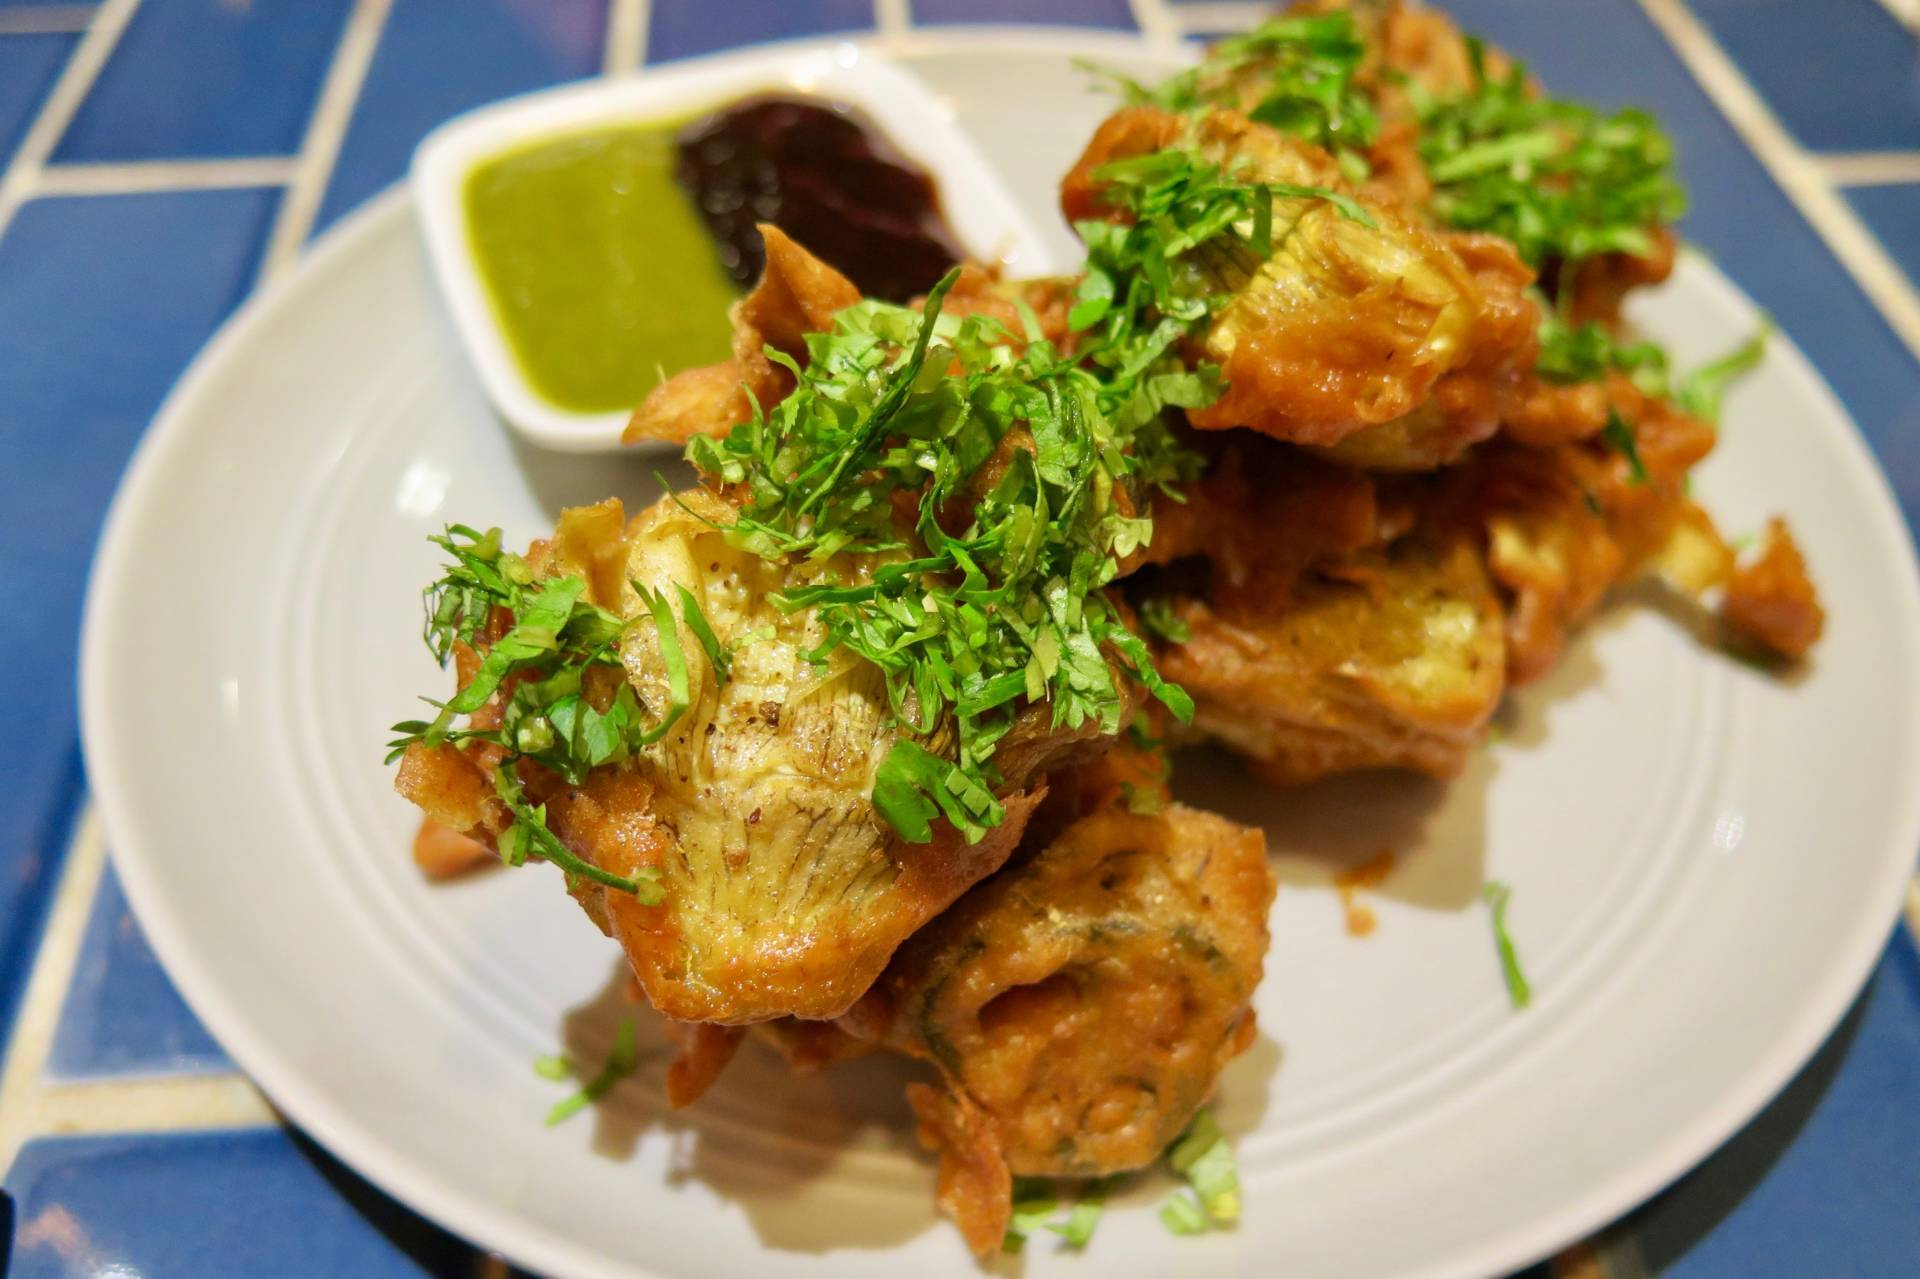 The artichoke pakoras are a great place to start.